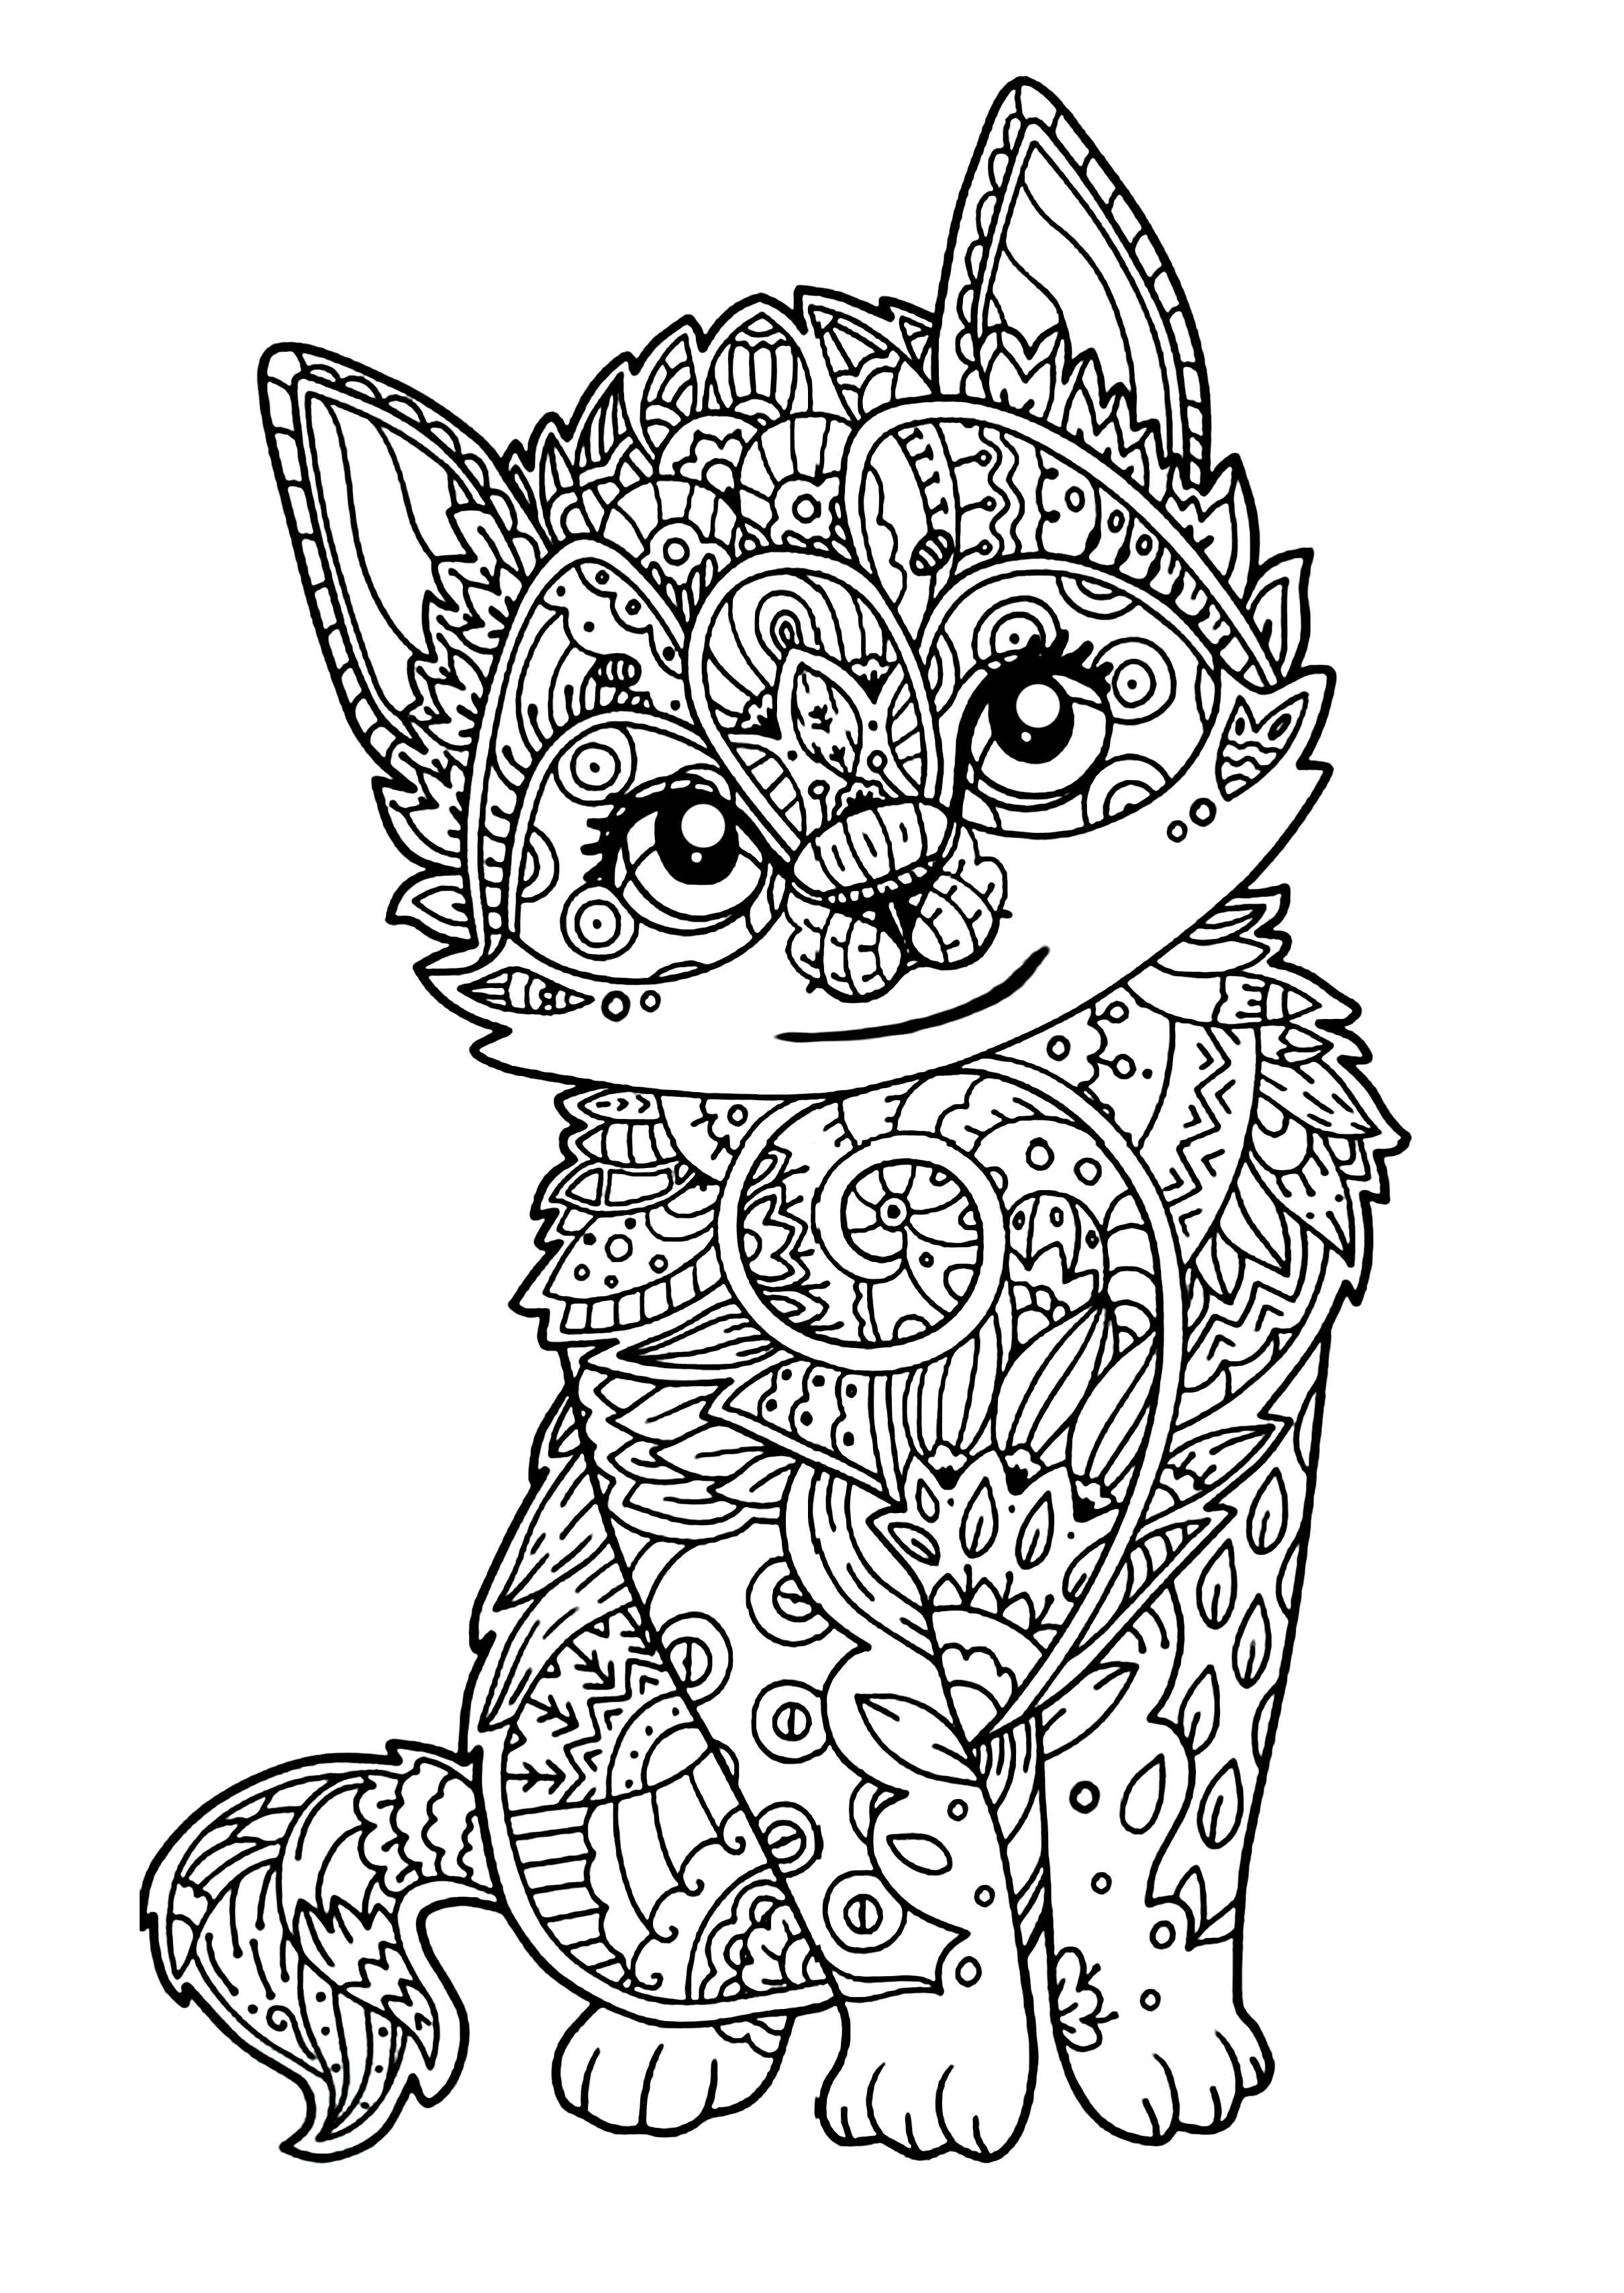 coloring cat pages cat coloring pages for adults best coloring pages for kids cat coloring pages